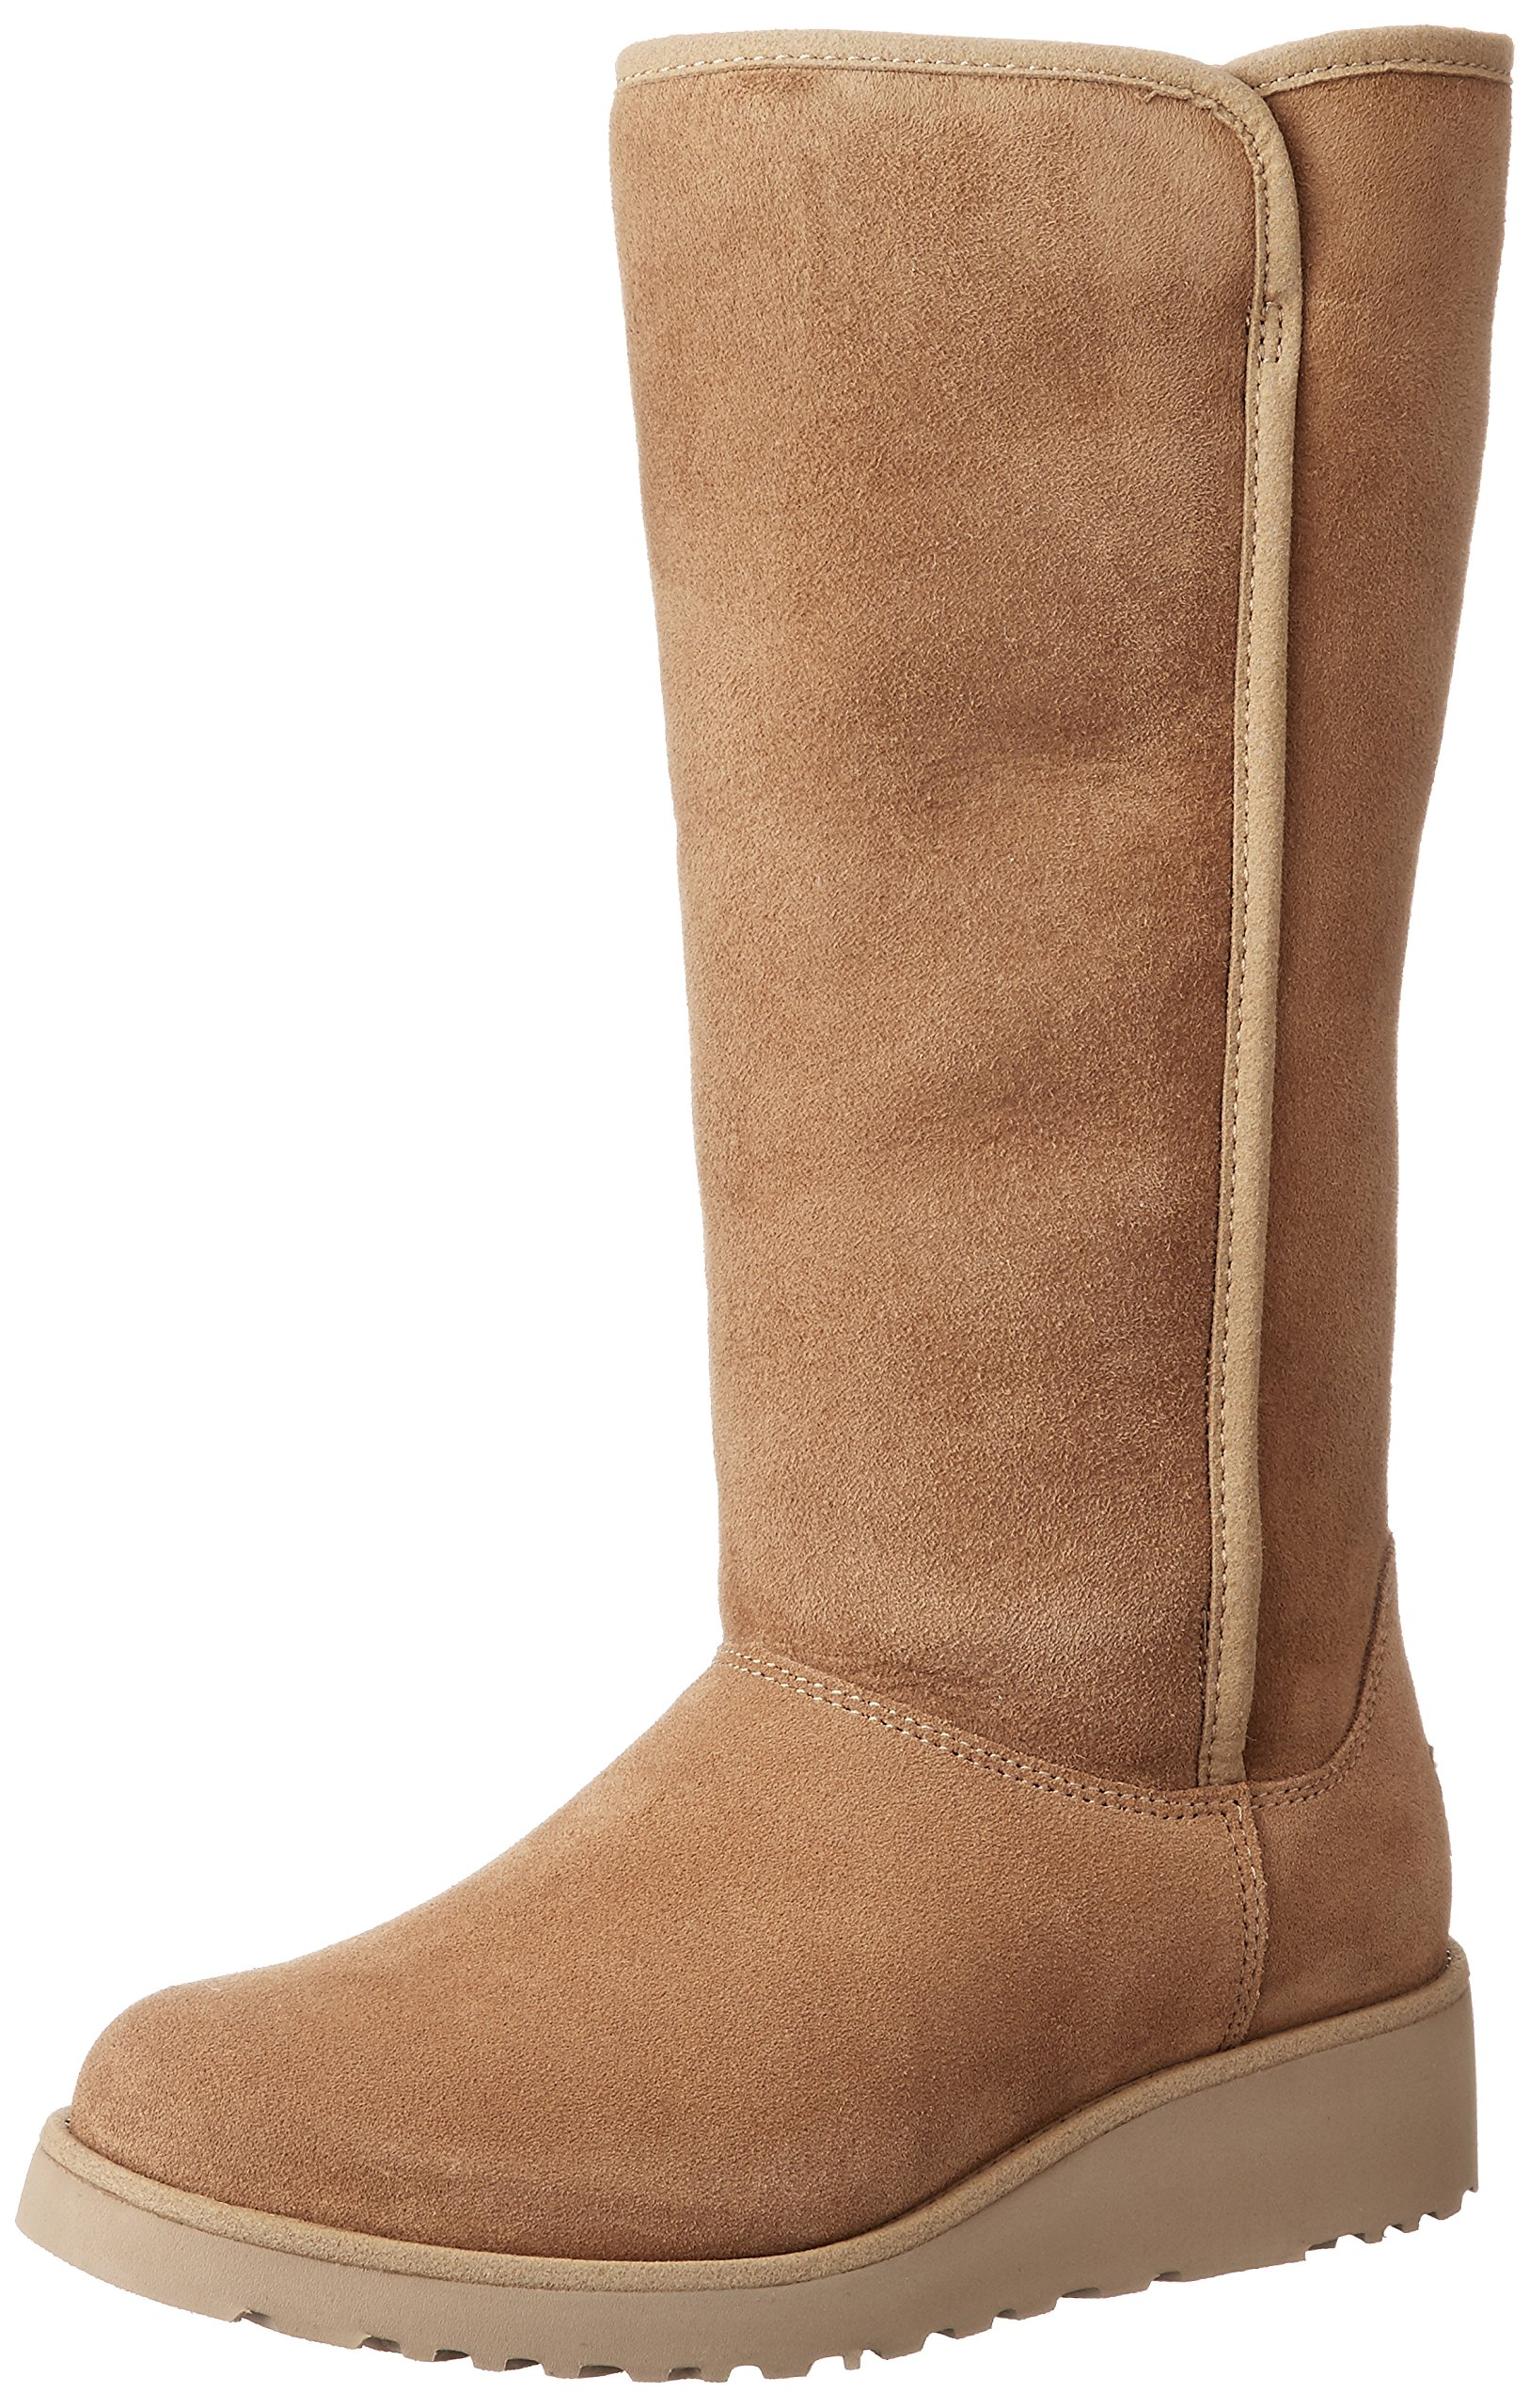 UGG Women's Kara Winter Boot, Chestnut, 8 B US